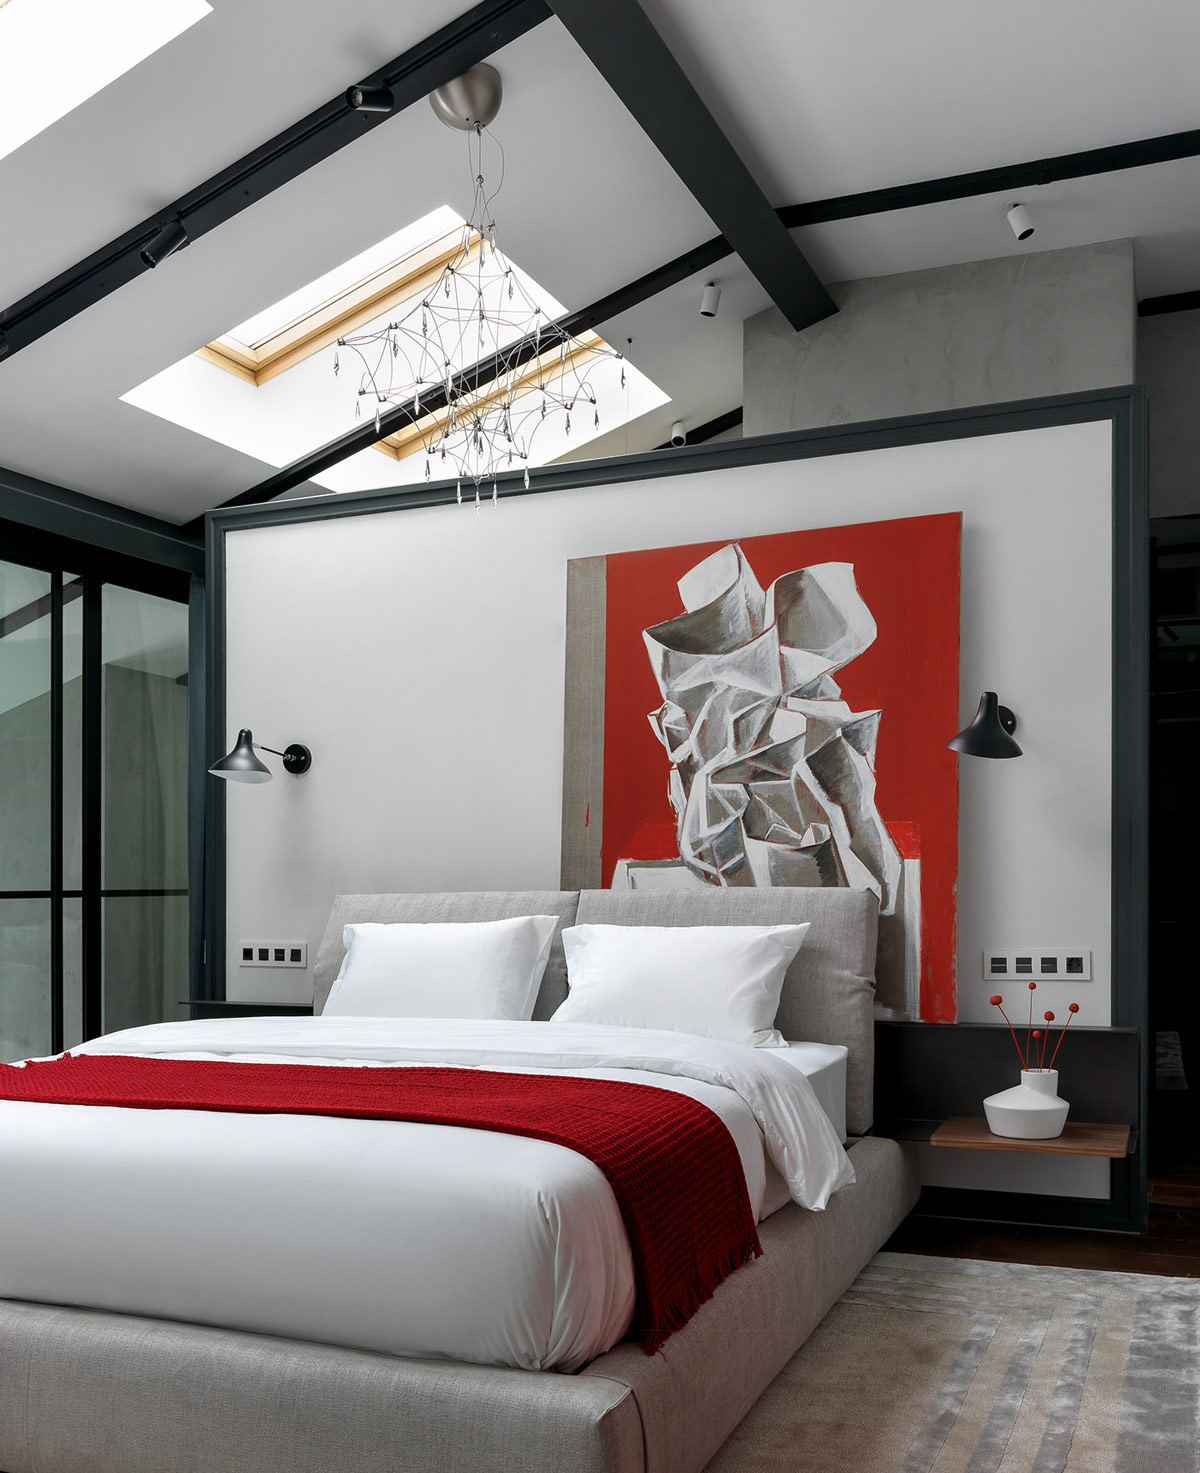 Bedroom in Gray and Red Designs